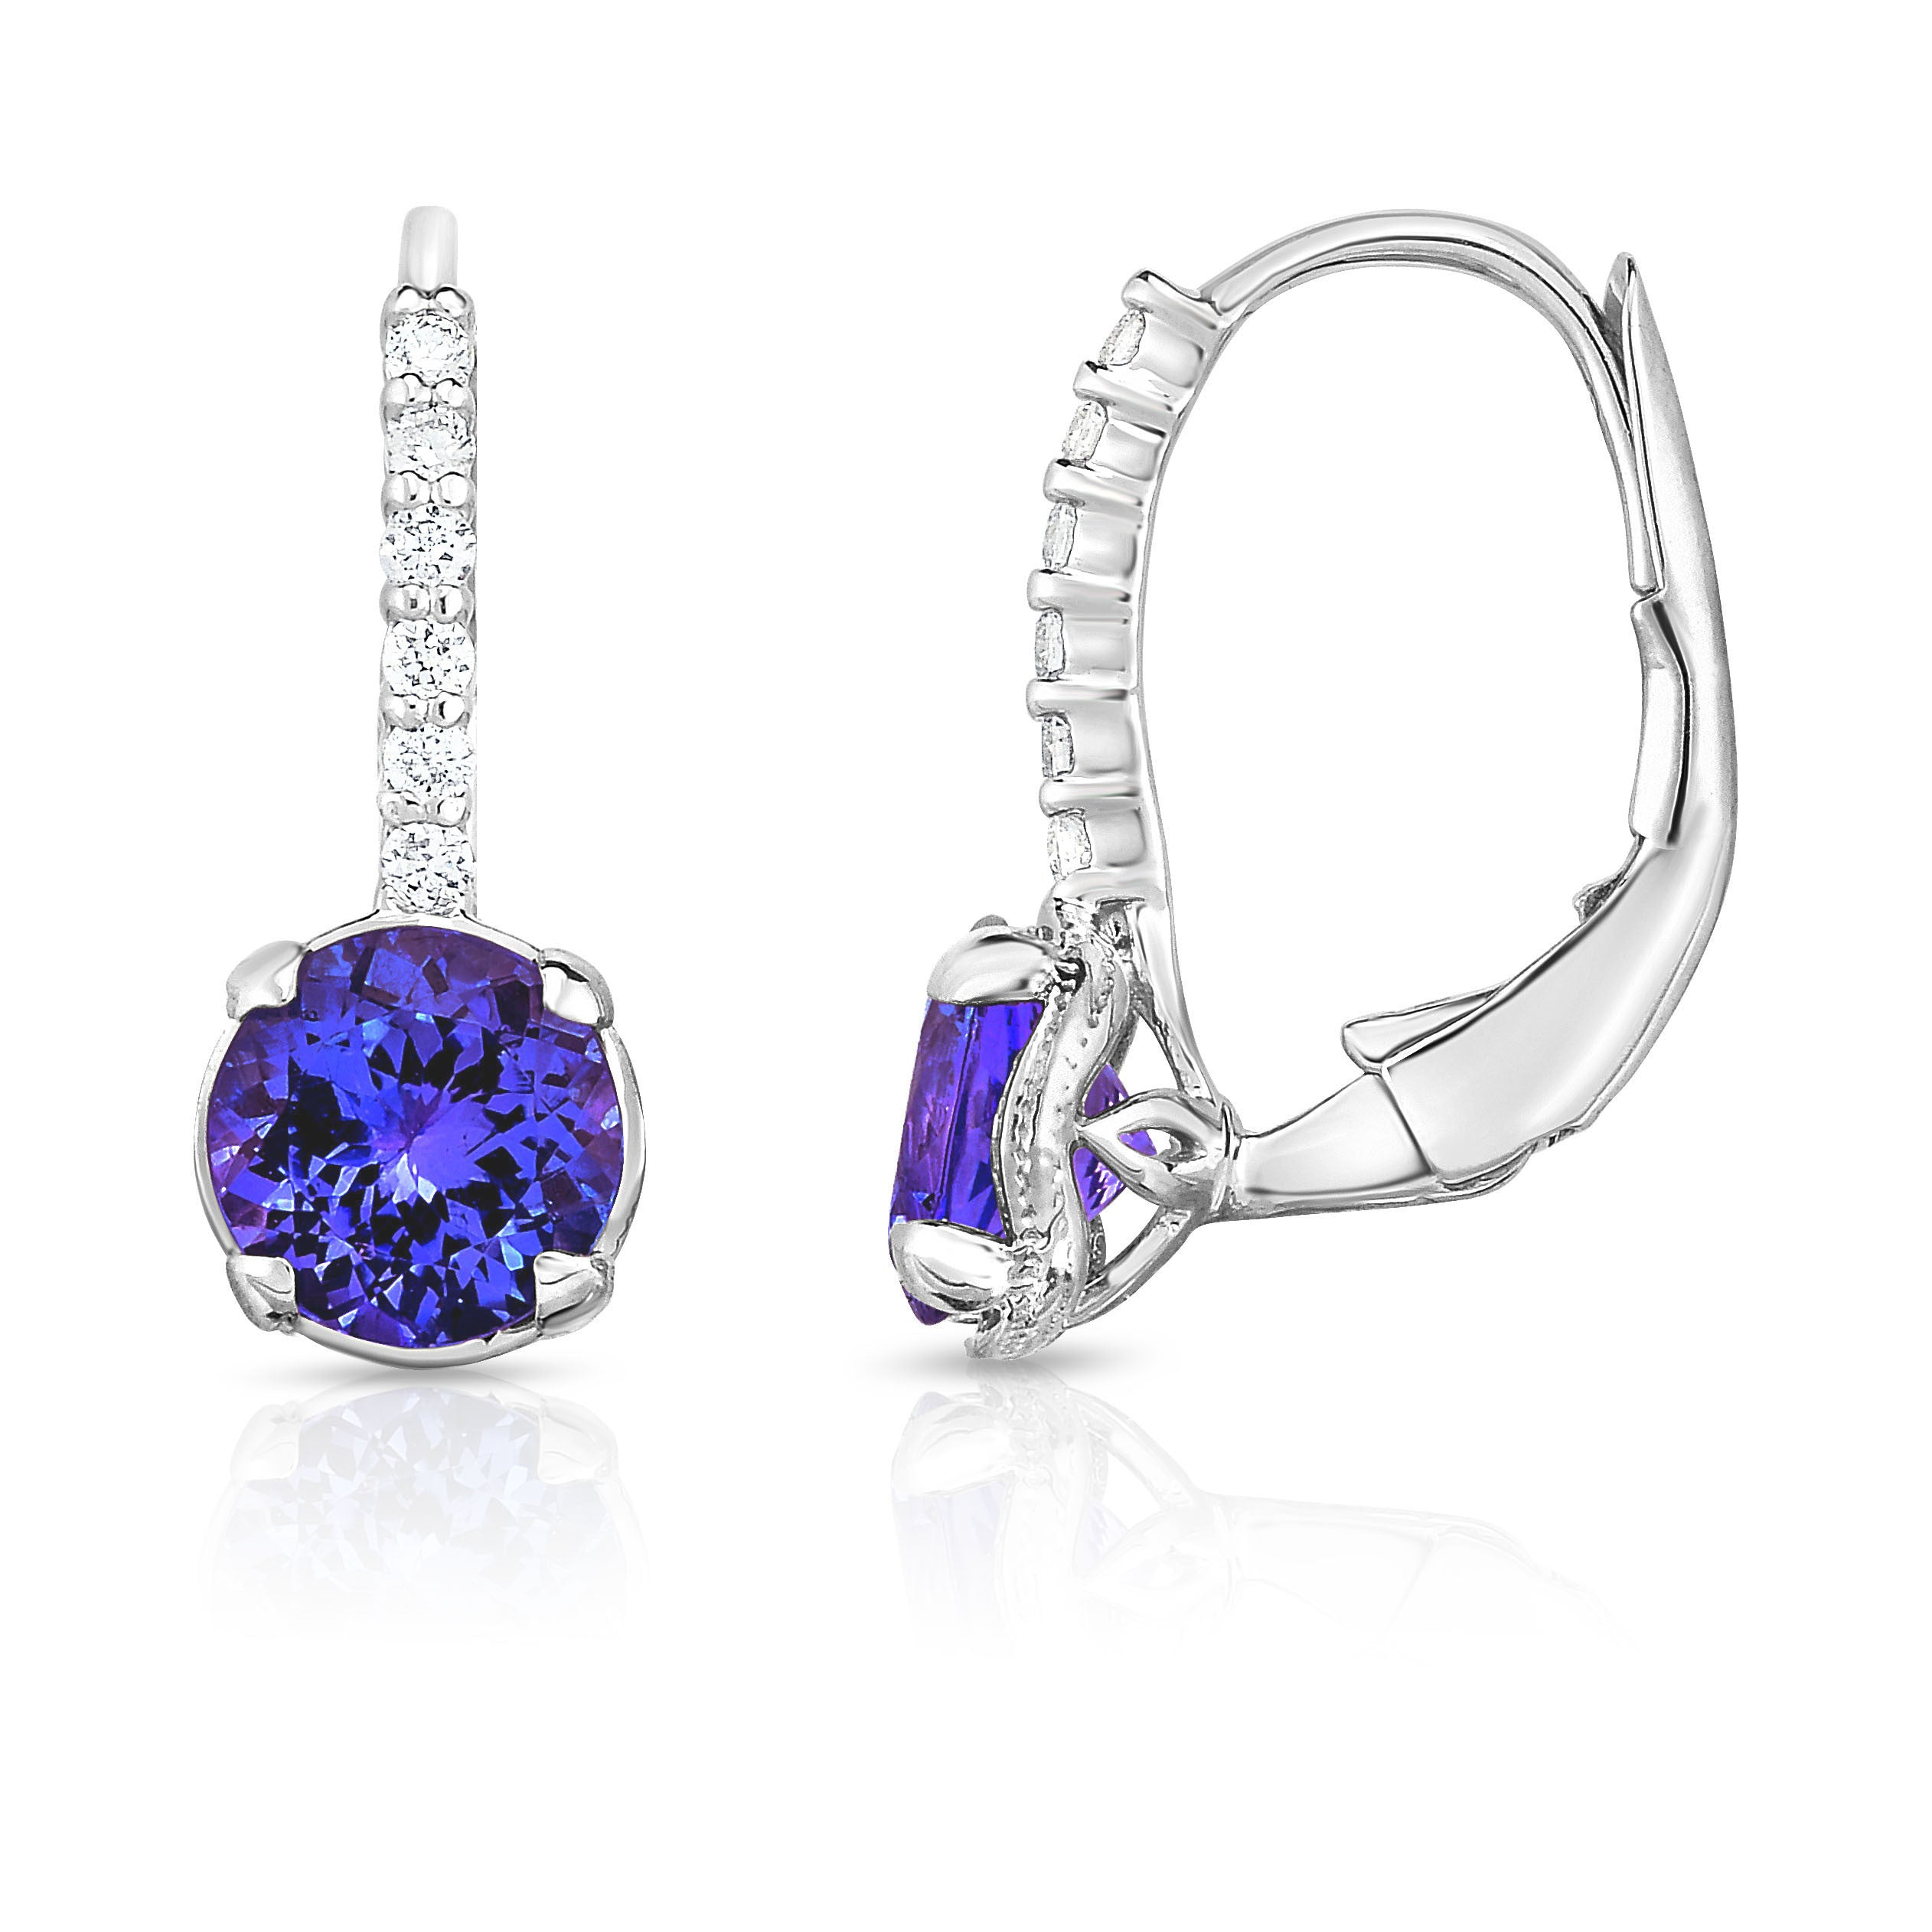 white gold pantone hueb colour violet in and articles tanzanite jewellery drop luminus with diamonds ultra earrings